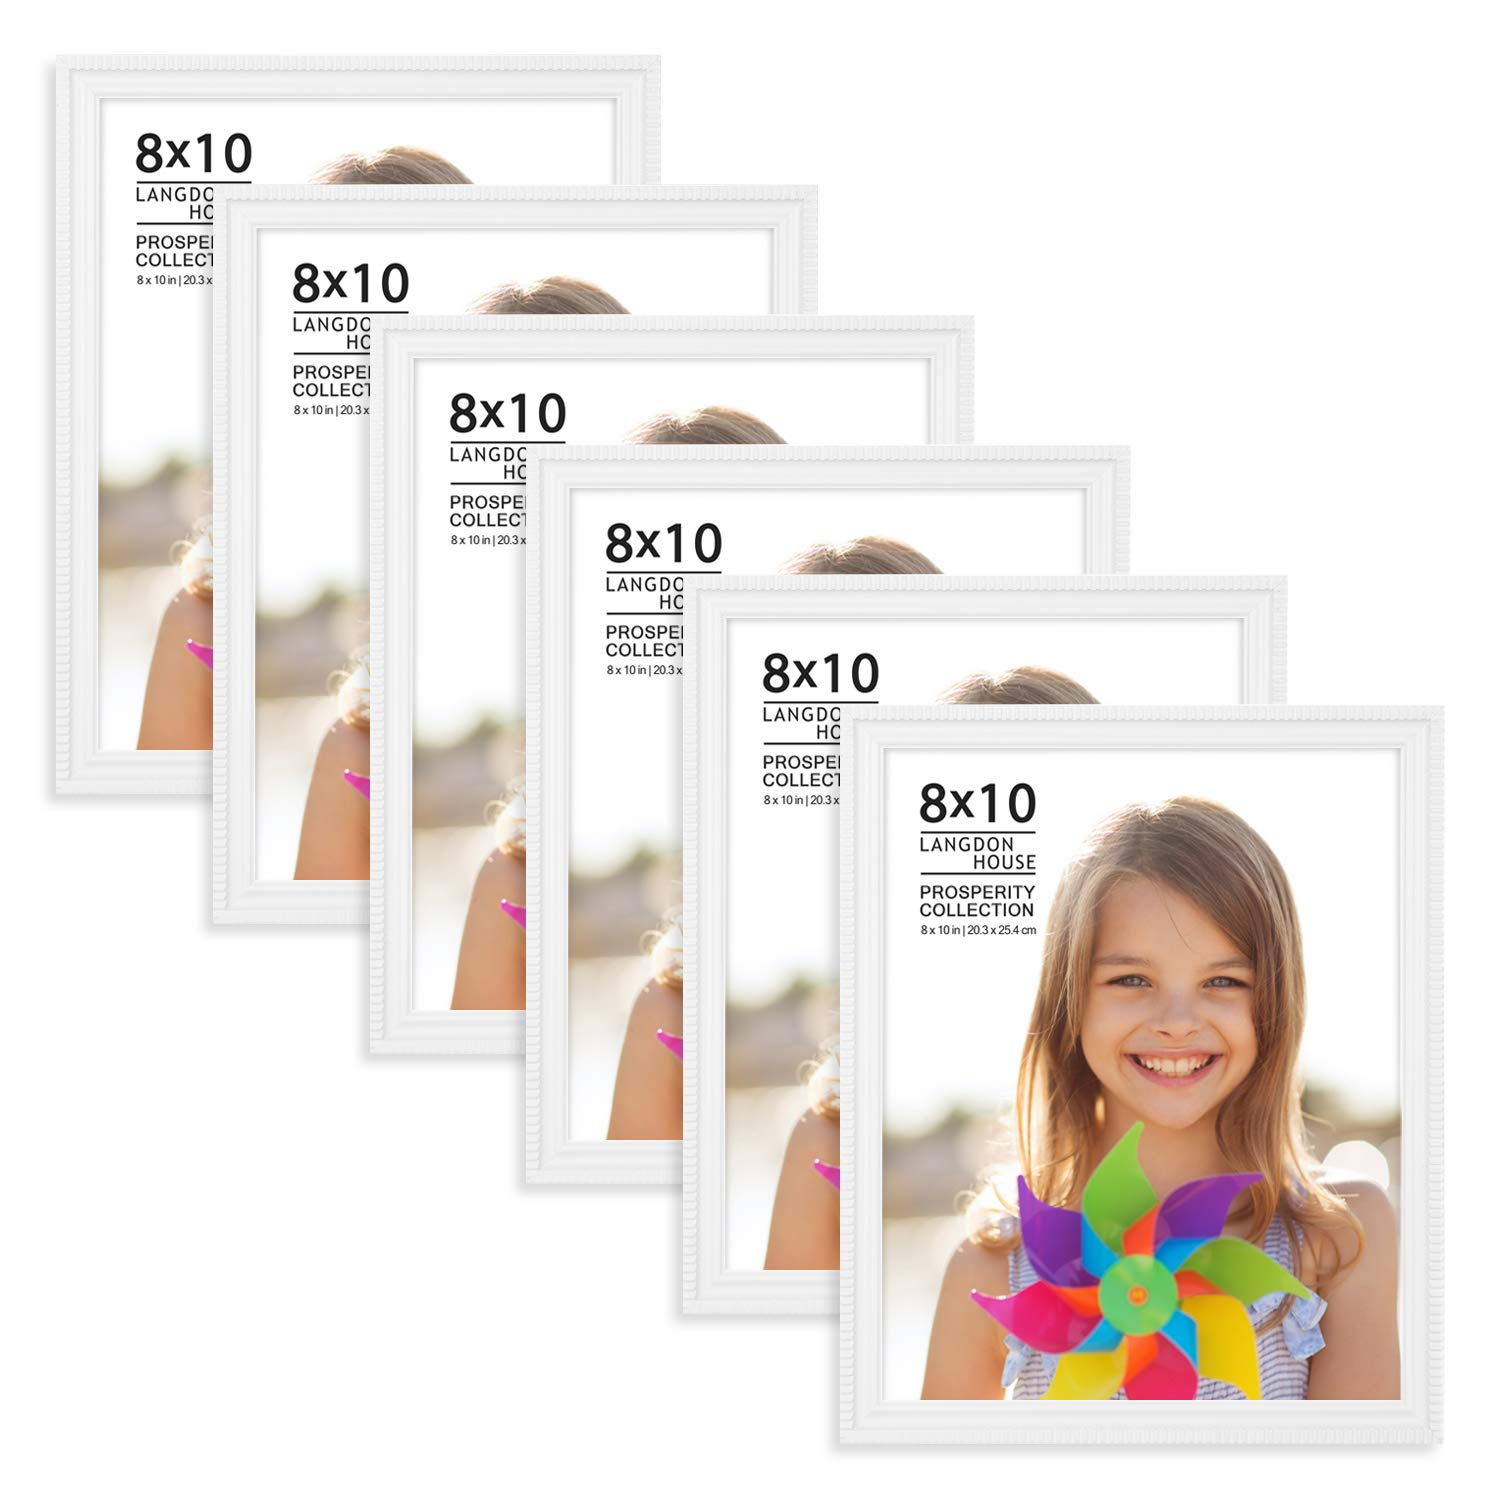 Langdons 8x10 Picture Frames (6 Pack, White) White Picture Frame Set, Wall Mount or Table Top, Set of 6 Prosperity Collection by Langdons